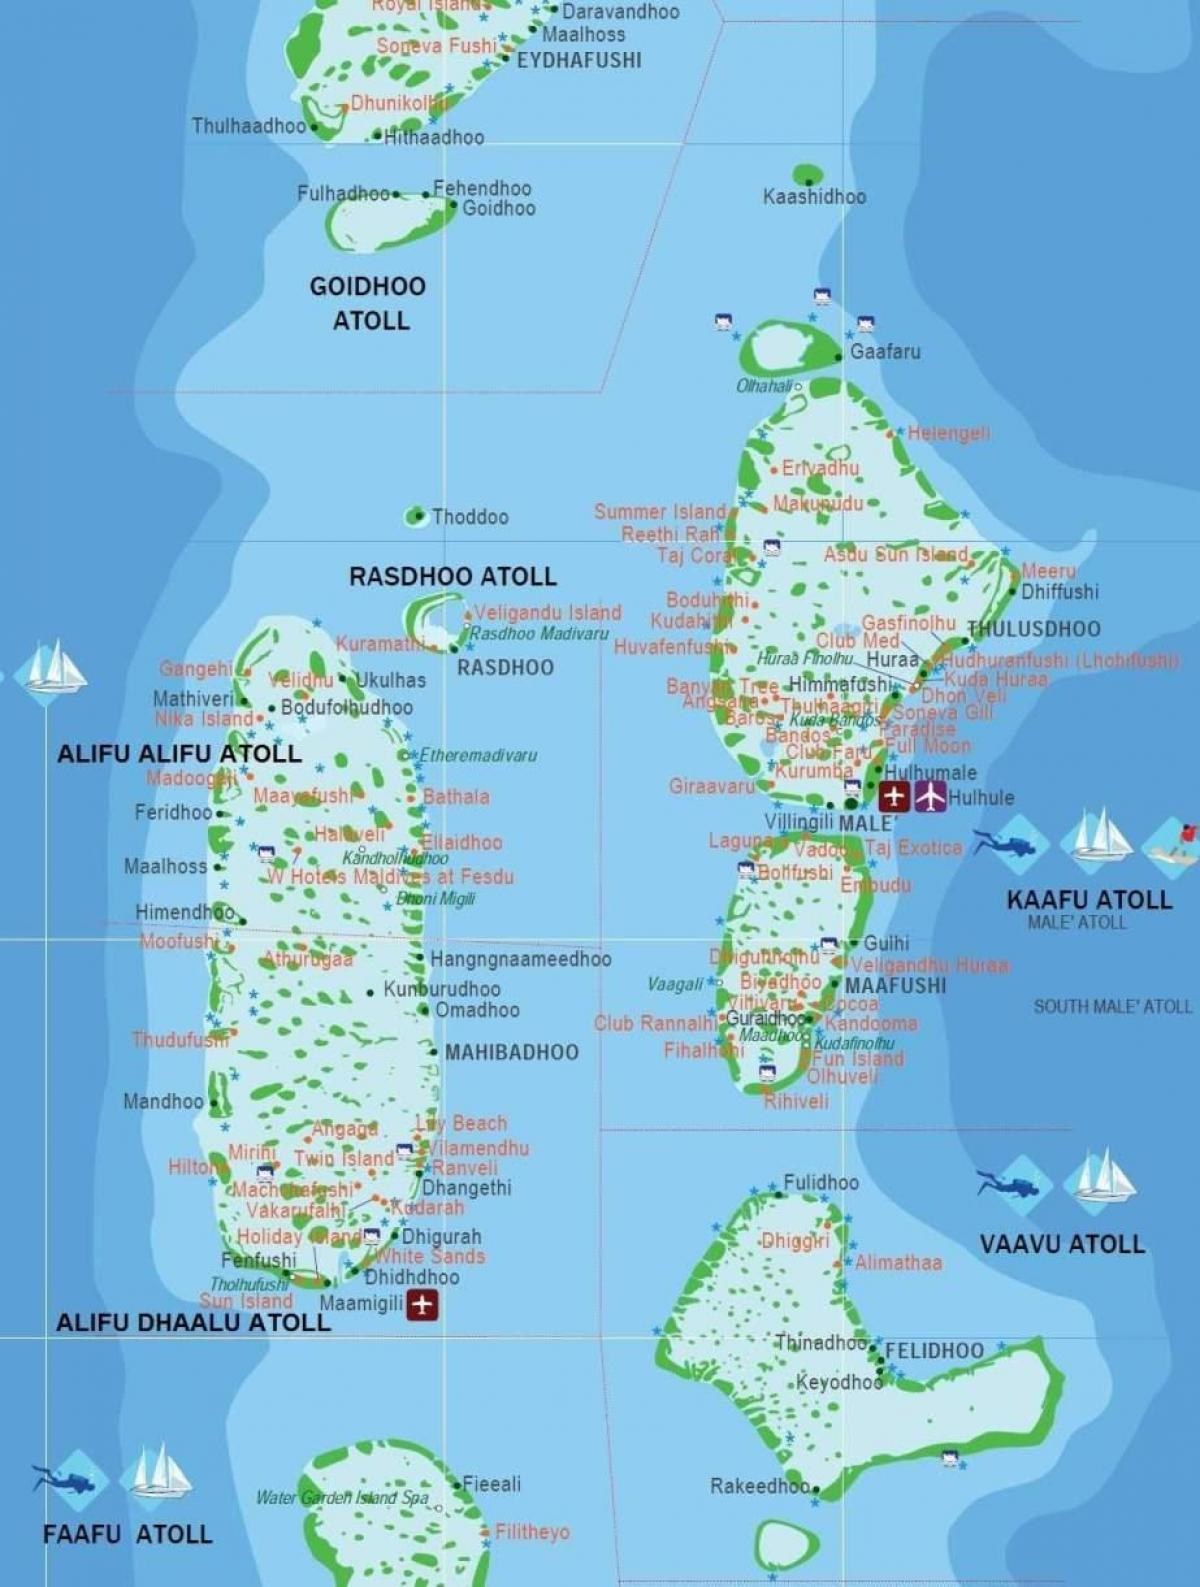 Maldives On Map Of Asia.Maldives Country Map Maldives Country In World Map Southern Asia